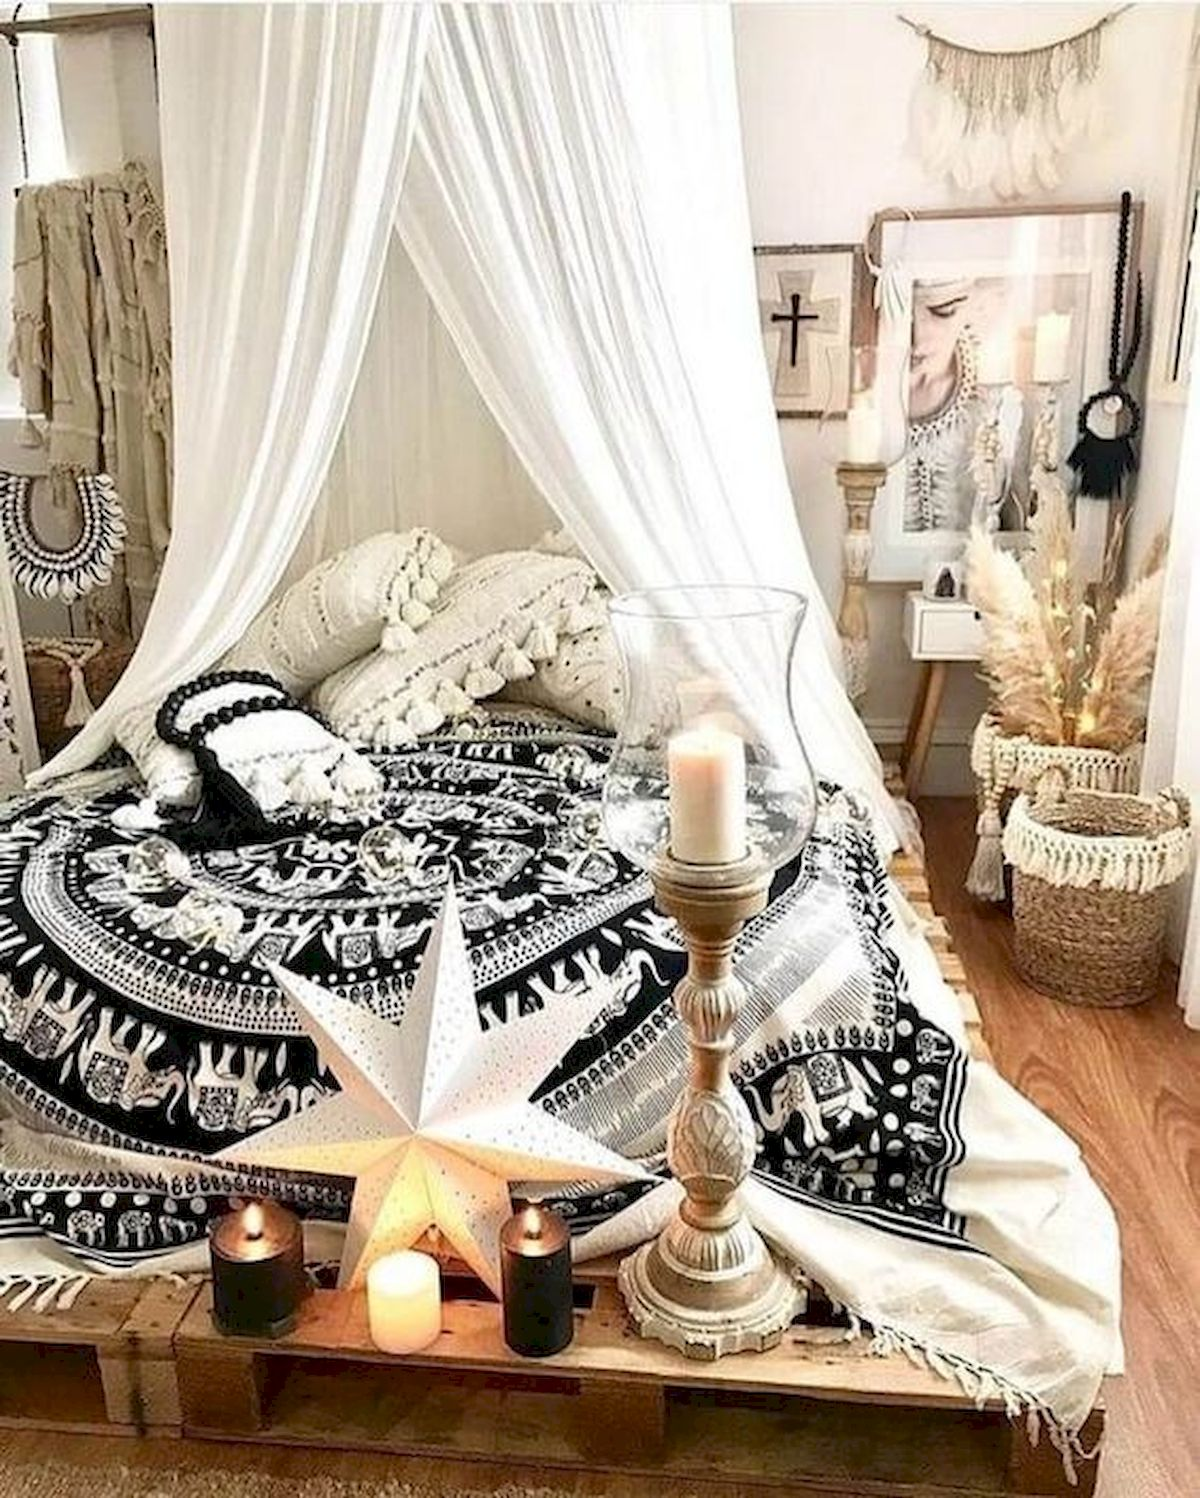 40 Incredible Modern Bedroom Design Ideas That Will Be Relax Place (24)